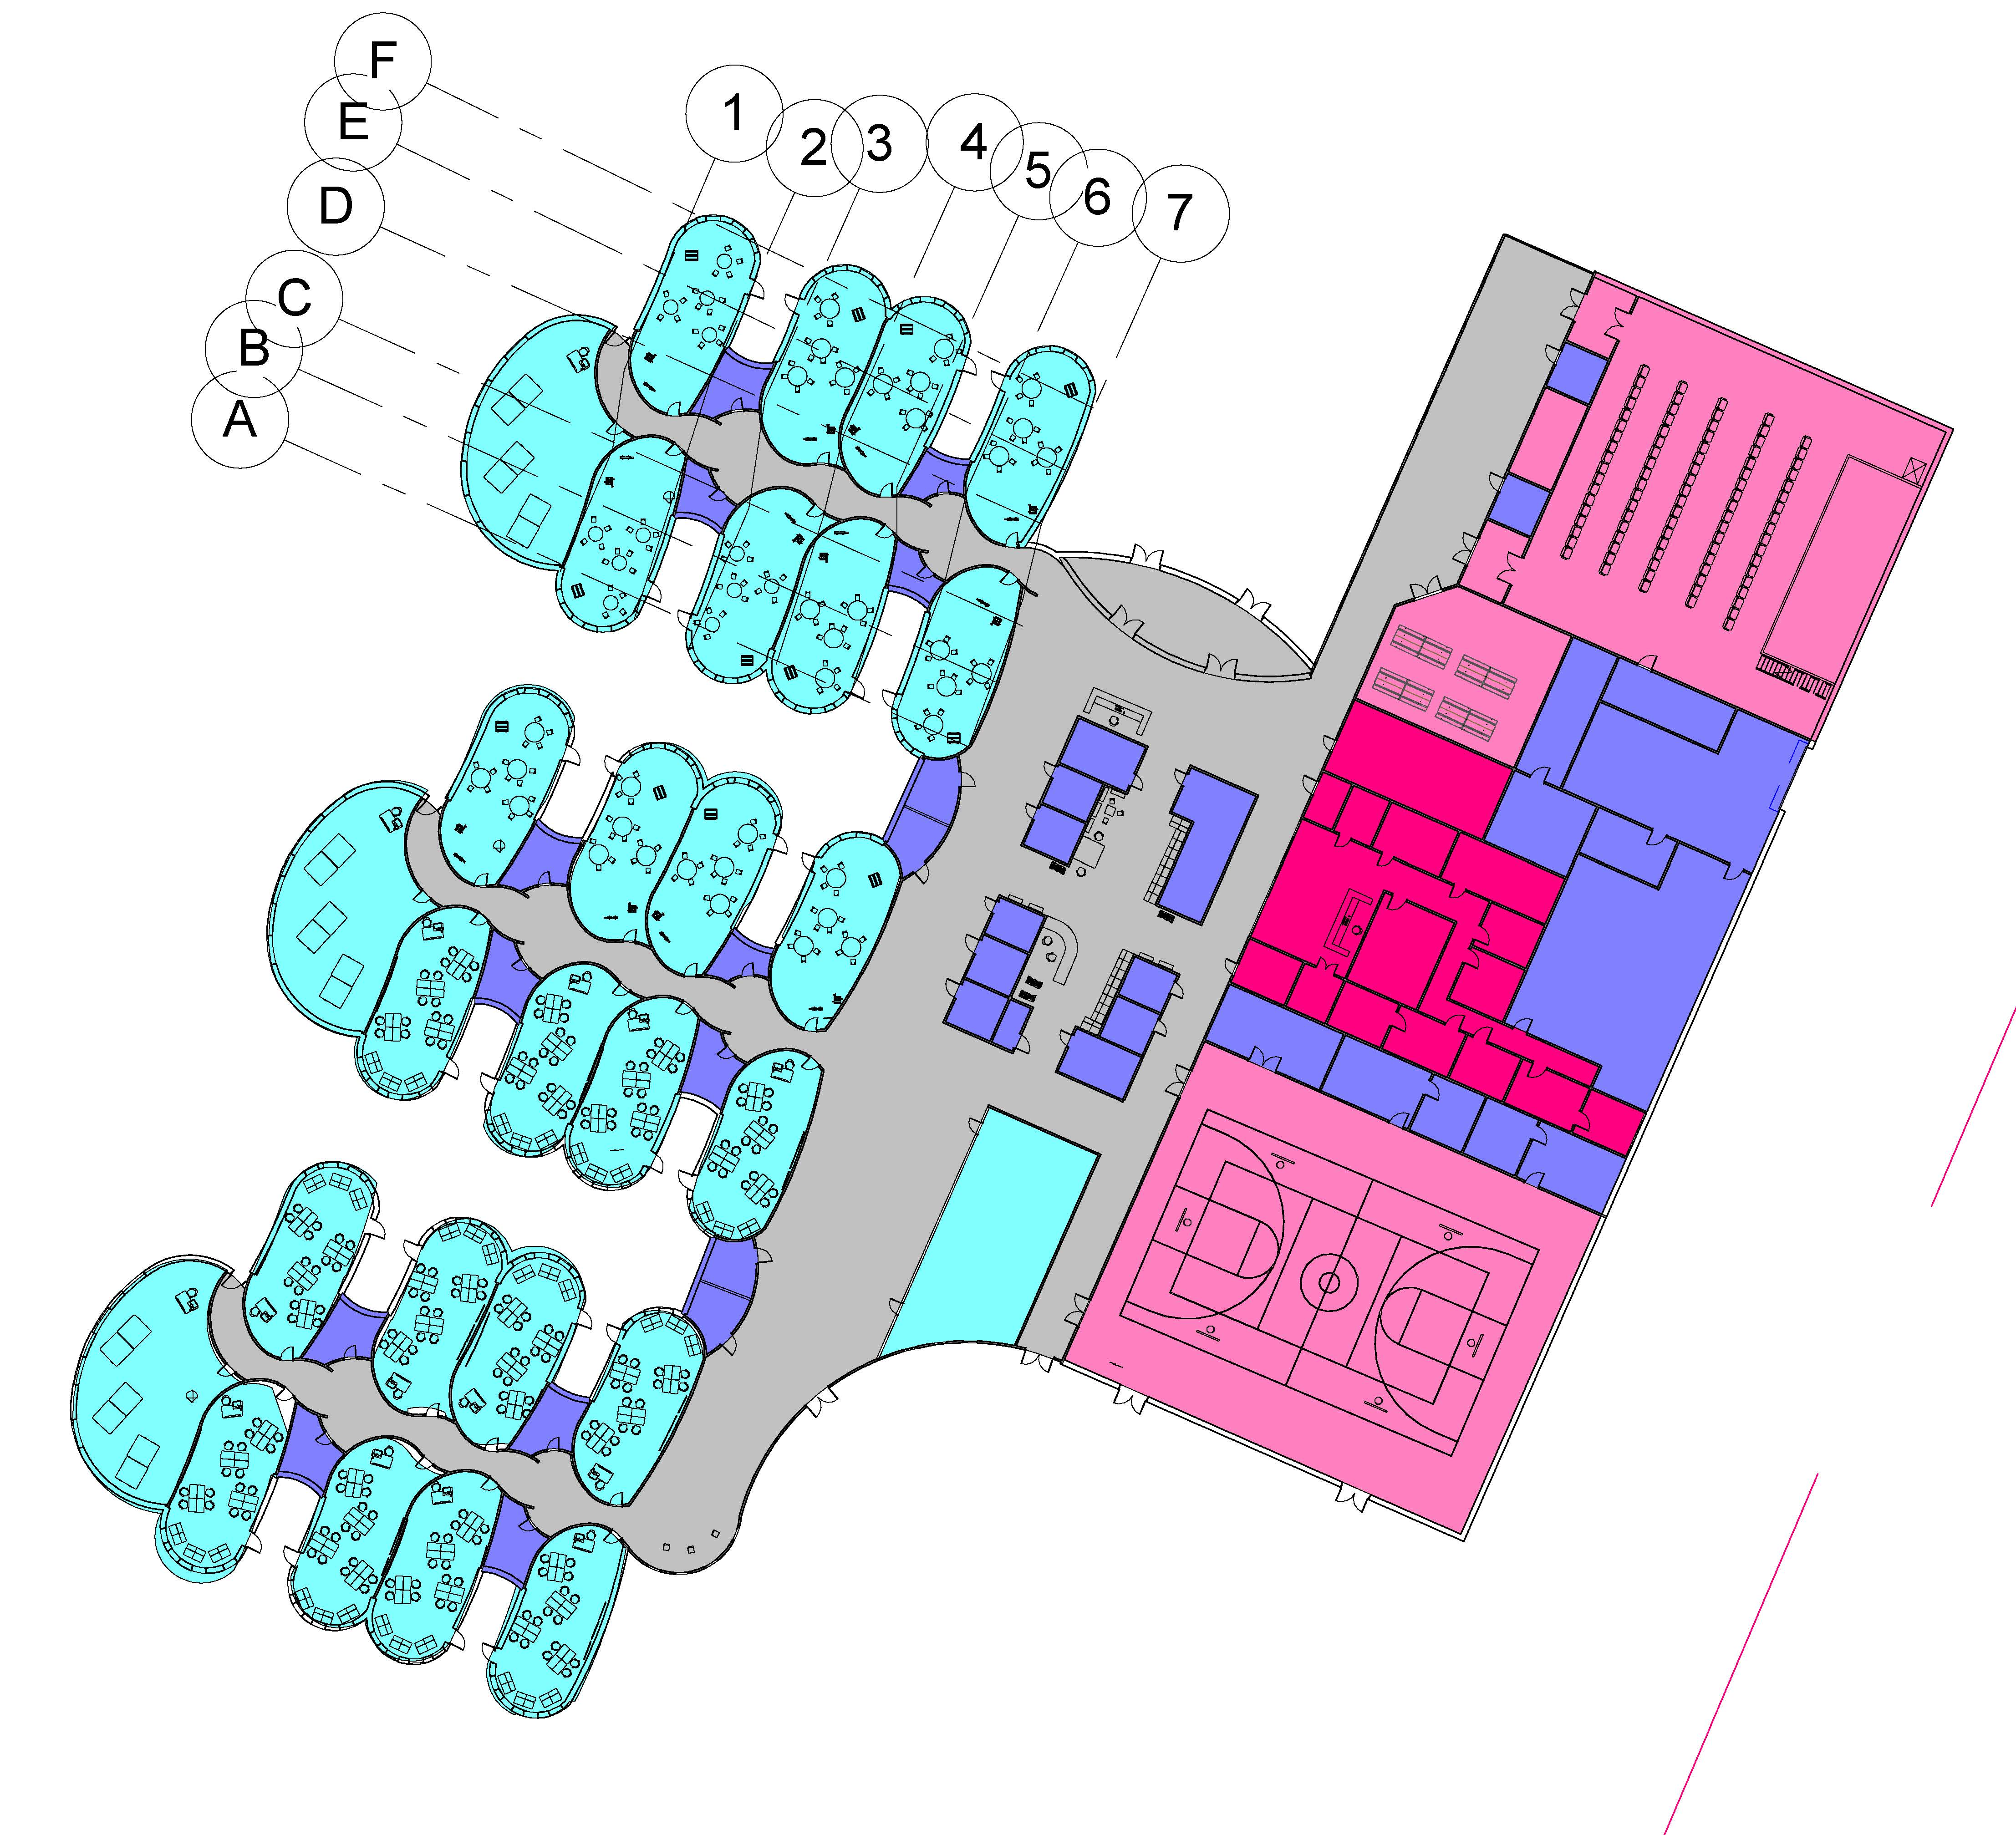 architectural engineering design.  Architectural Jovana Crnomarkovic A 2017 BS Graduate In Civil Engineering With Focus  Structure And Architecture Designed This K8 School For Her CIV_ENV 3852  And Architectural Engineering Design C